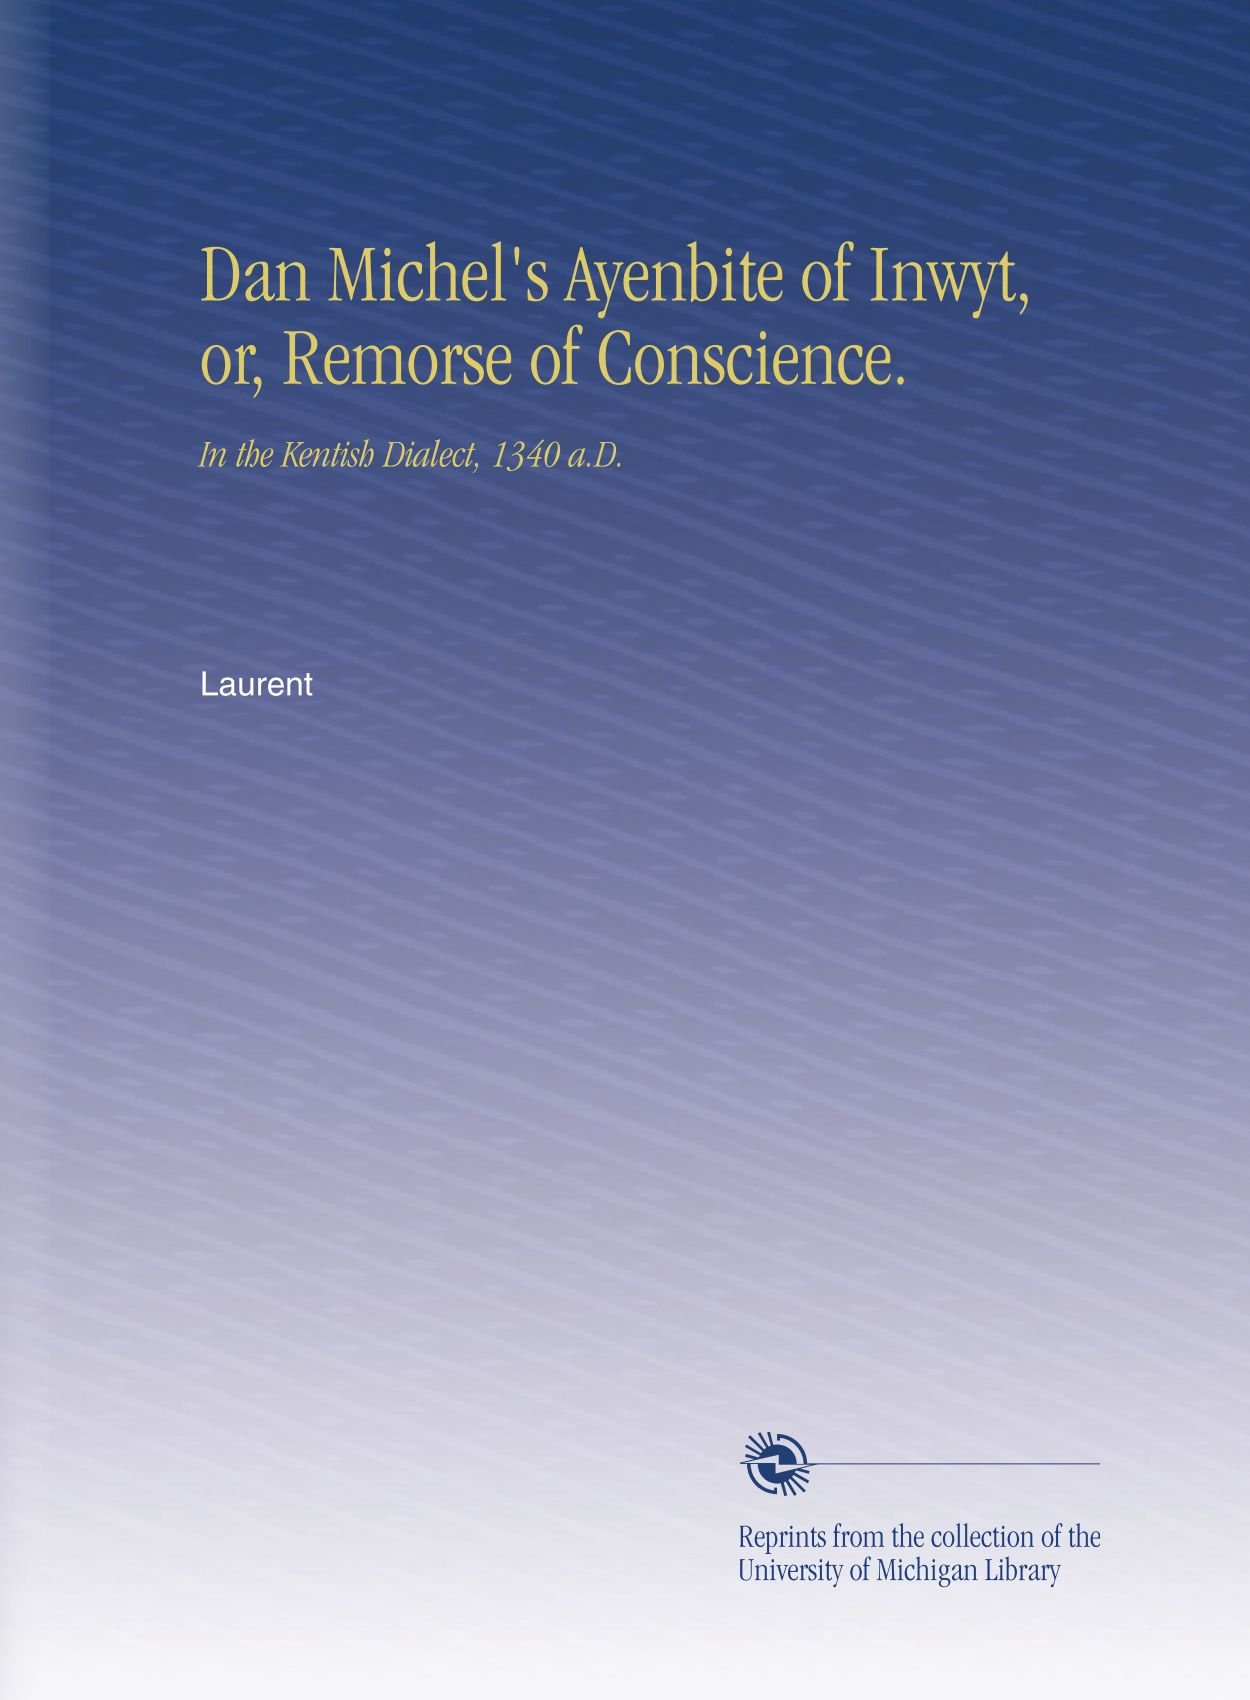 Dan Michel's Ayenbite of Inwyt, or, Remorse of Conscience.: In the Kentish Dialect, 1340 a.D. pdf